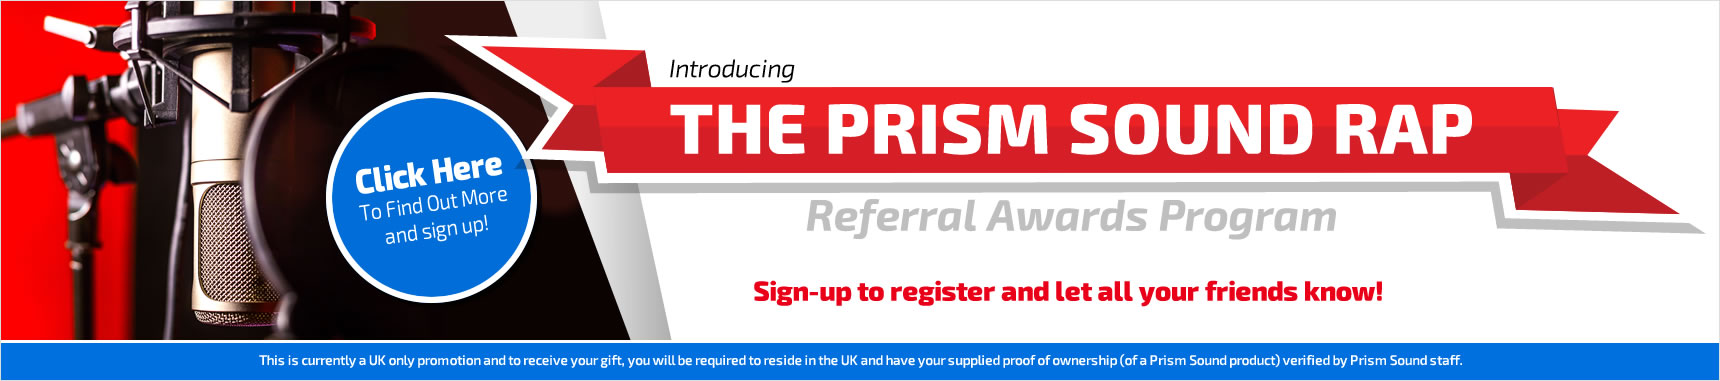 Prism Sound Referral Awards Program